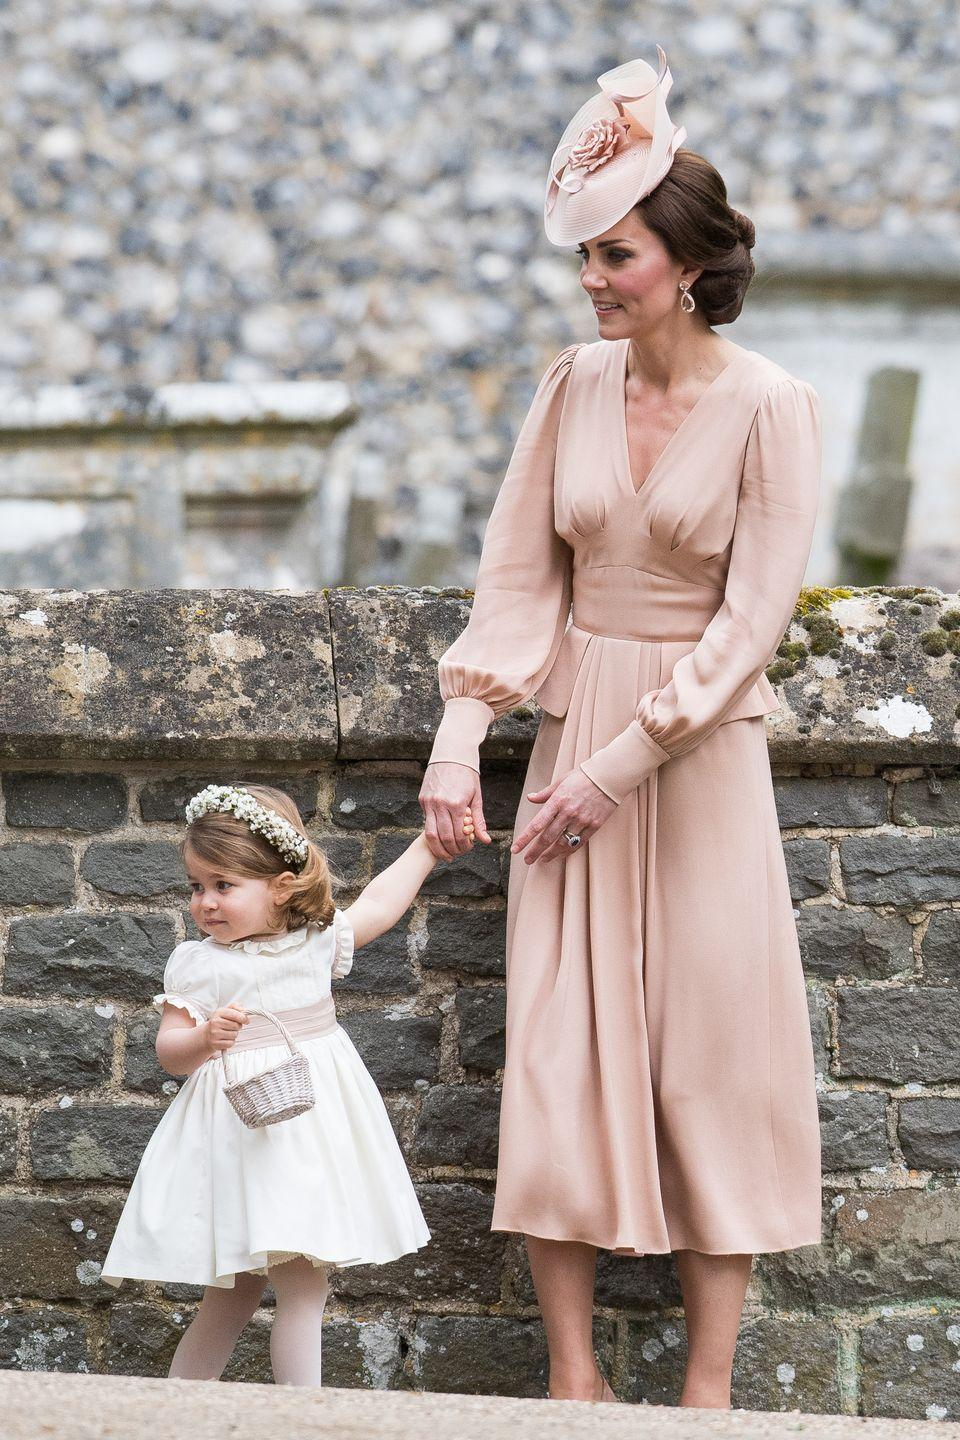 <p>The Duchess wears Alexander McQueen at Pippa Middleton's wedding (along with an adorable Princess Charlotte).</p>